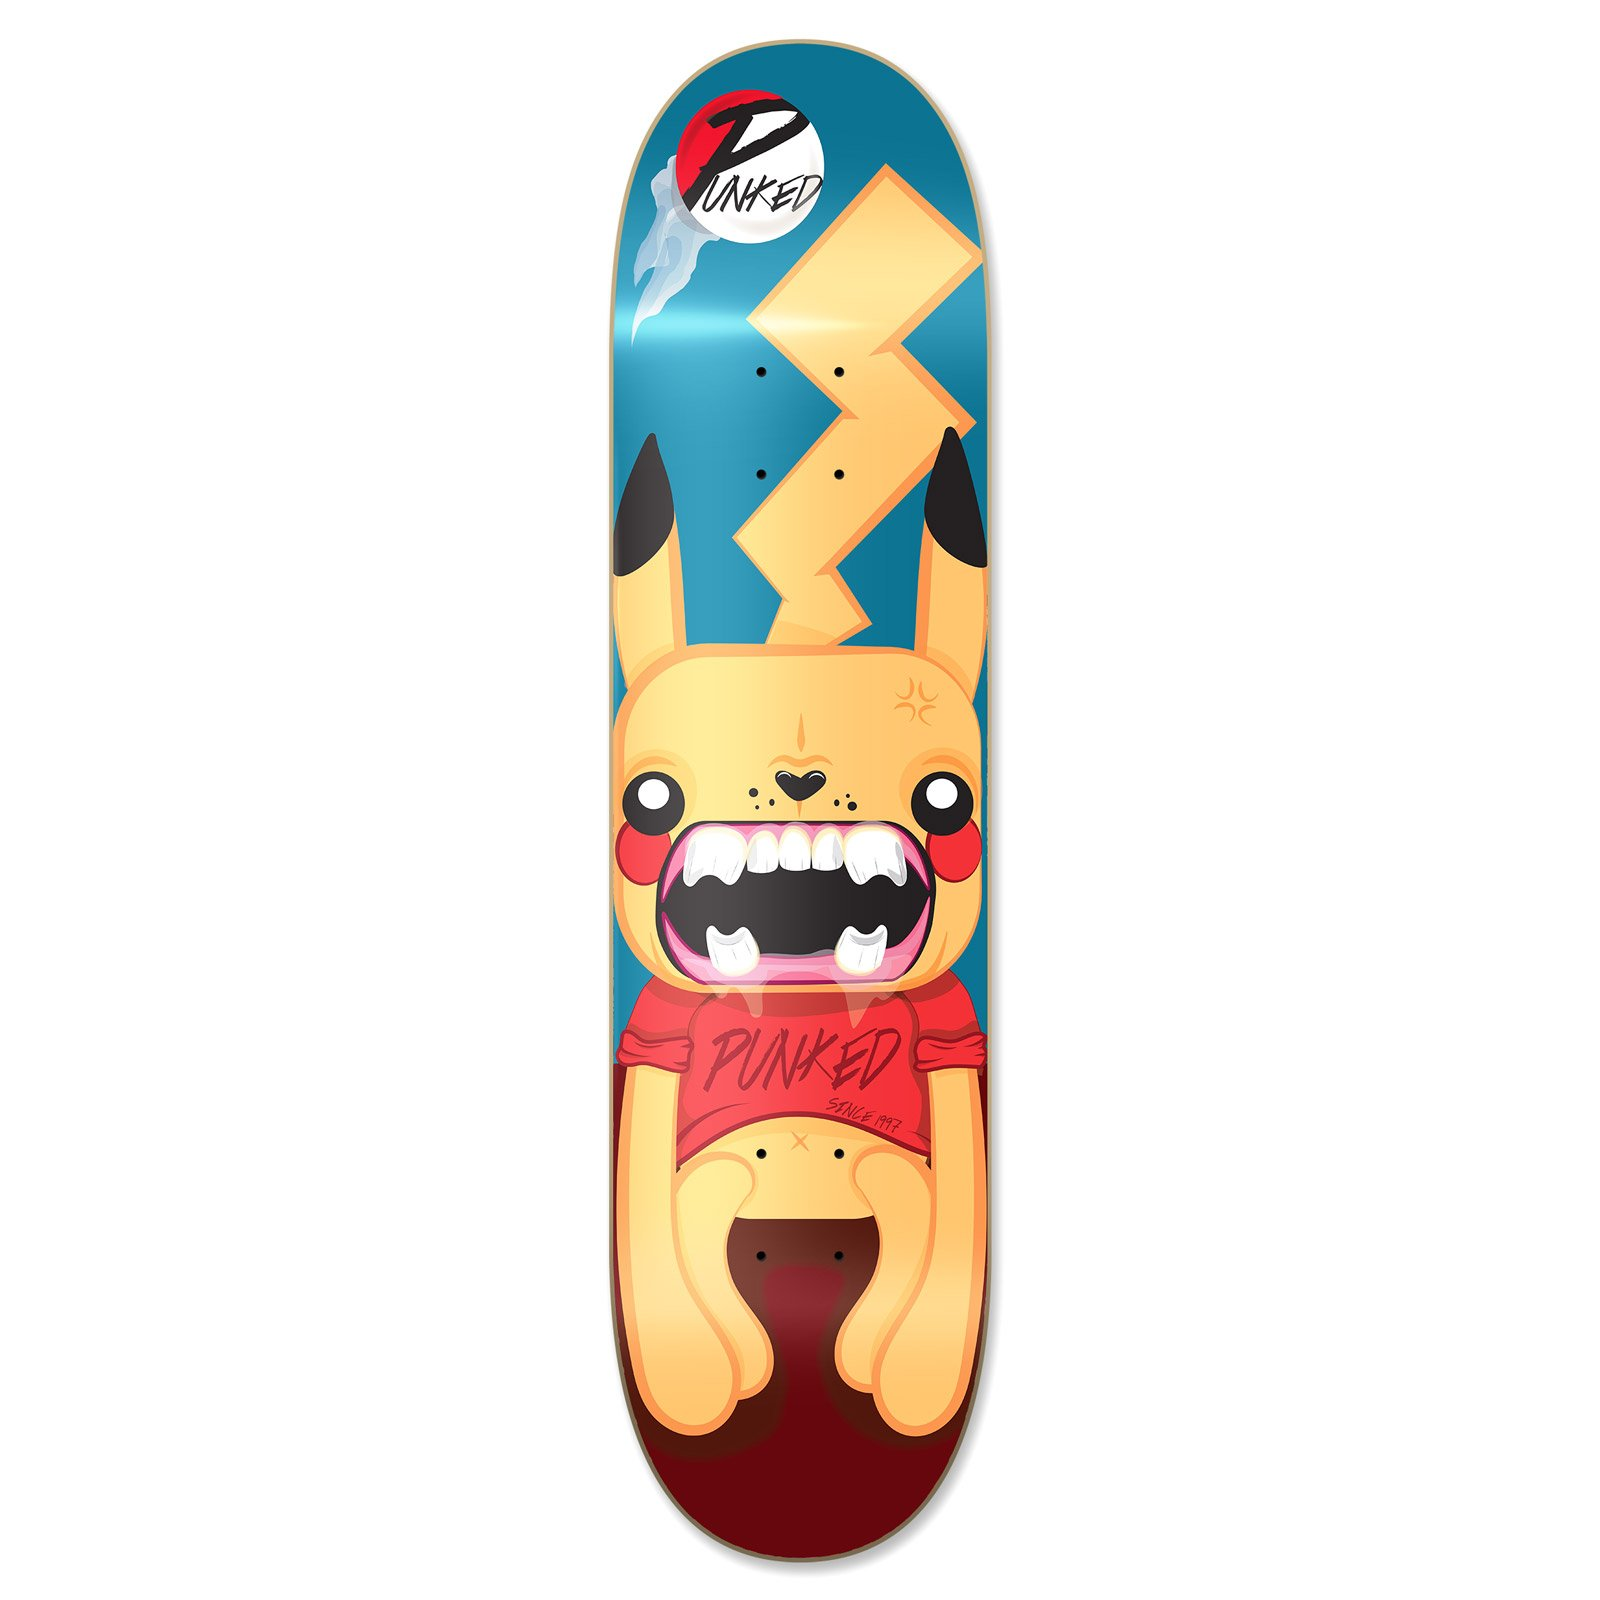 Yocaher Pika Punked Complete Skateboards available in 7.75'' , Mini Cruiser and Micro cruiser shapes (Deck - 7.75 inch)